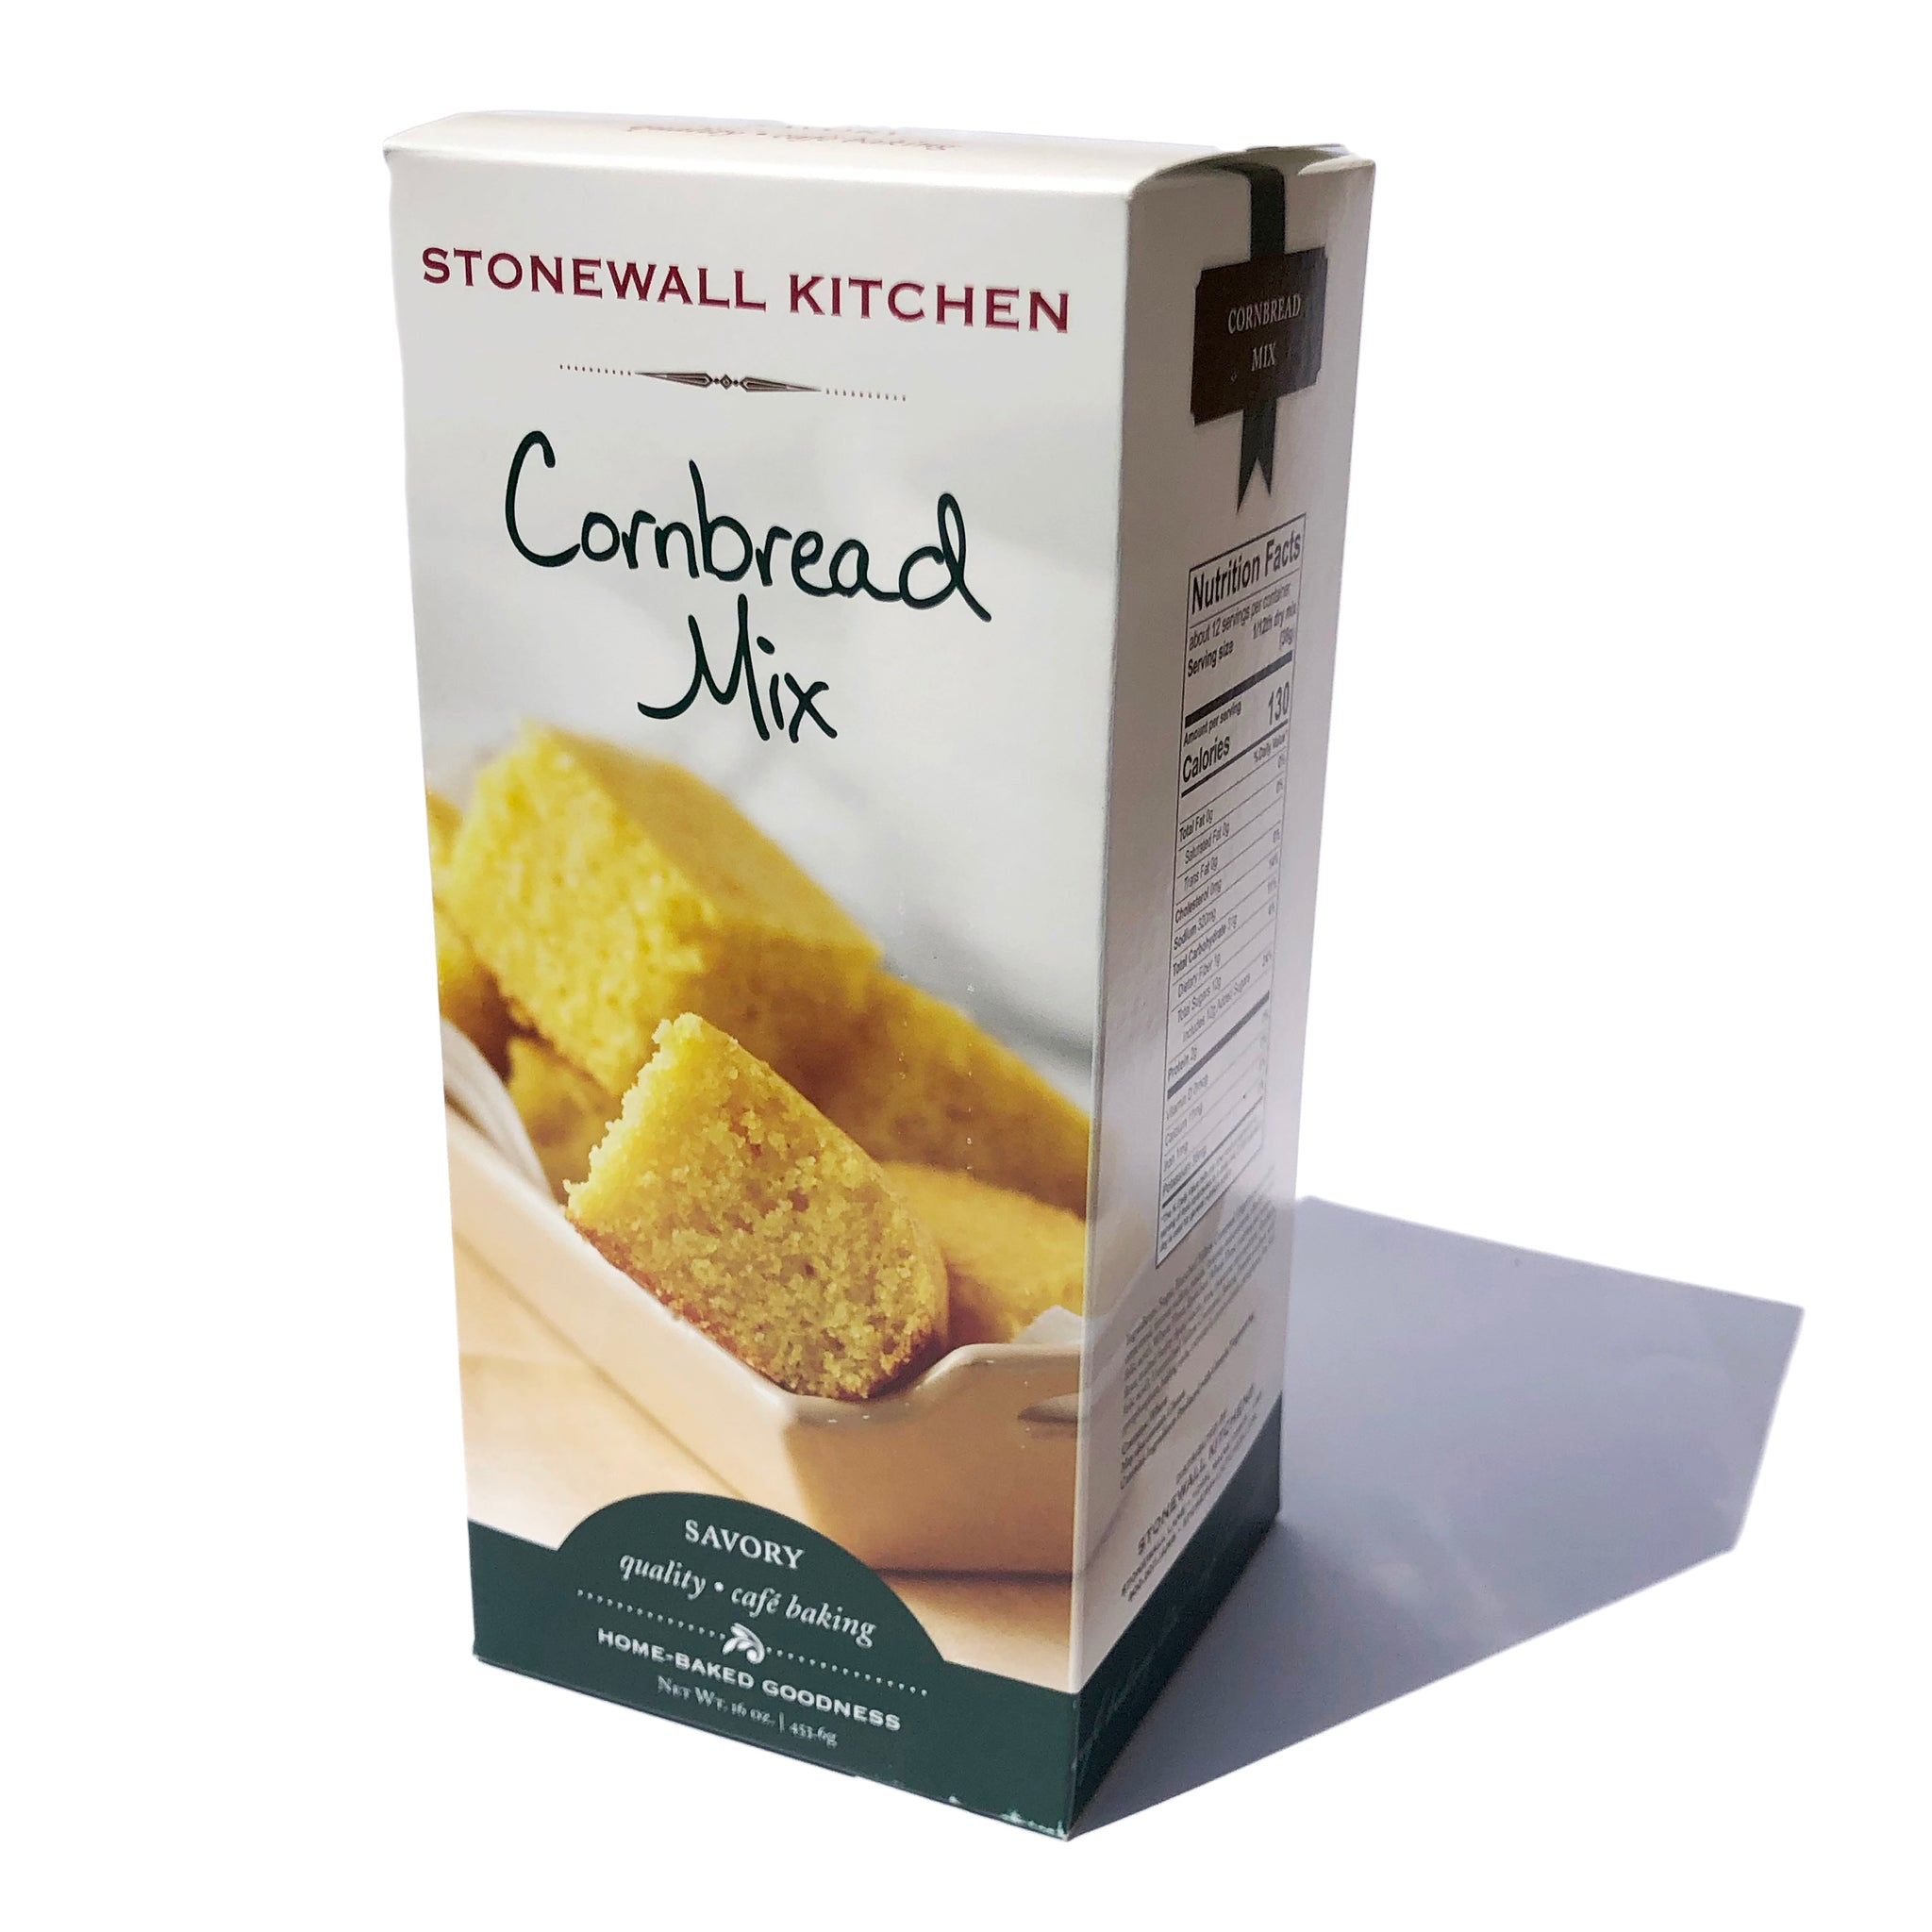 Stonewall Kitchen - Cornbread Mix